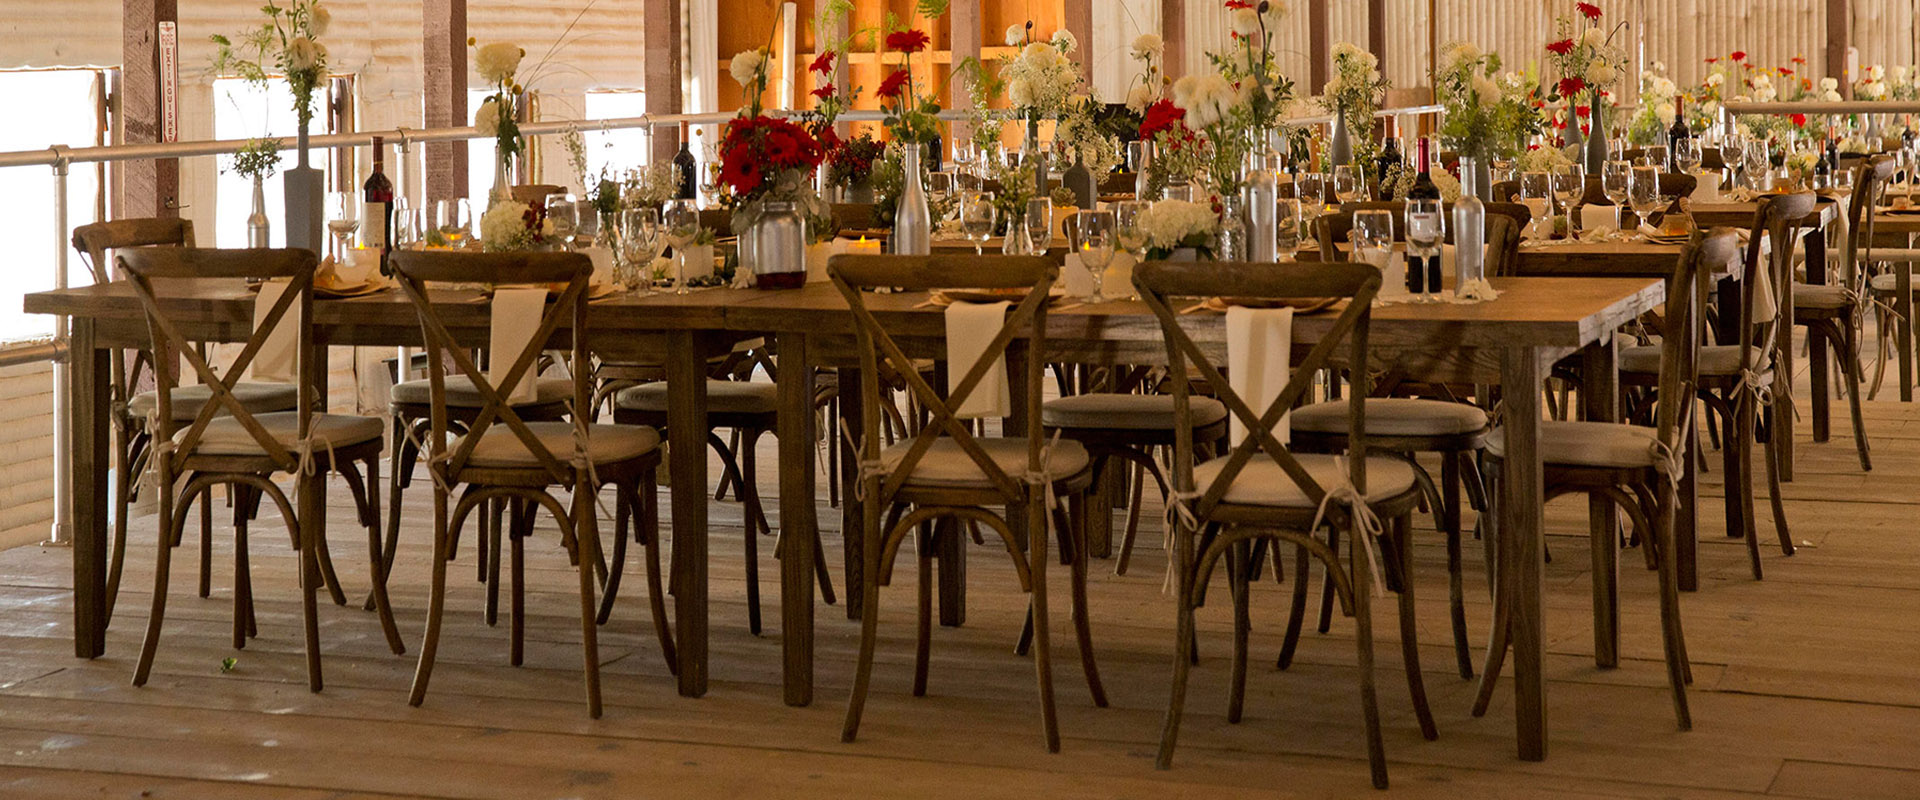 Chair And Table Rentals Allure Party Rentals Chairs Tents Tables Linens